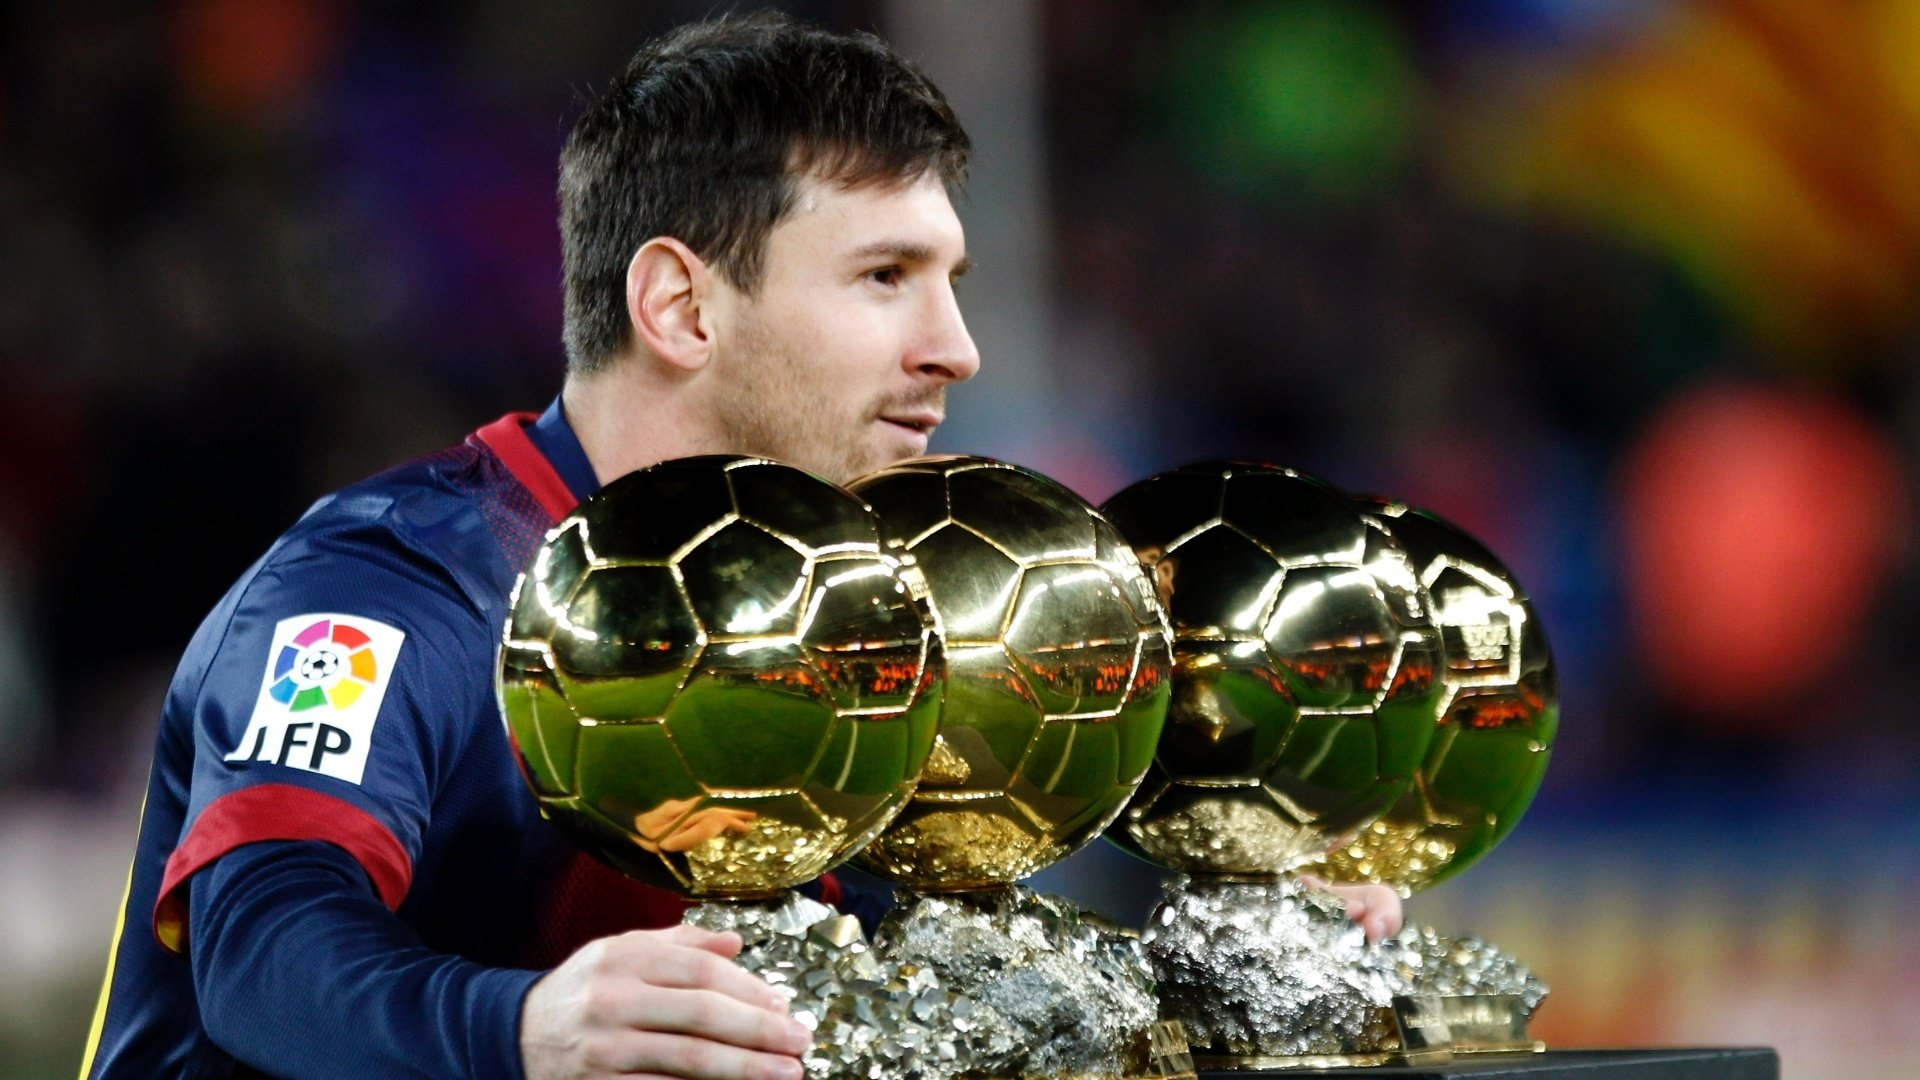 Top Lionel Messi Wallpapers  Backgrounds High Definition 1920x1080